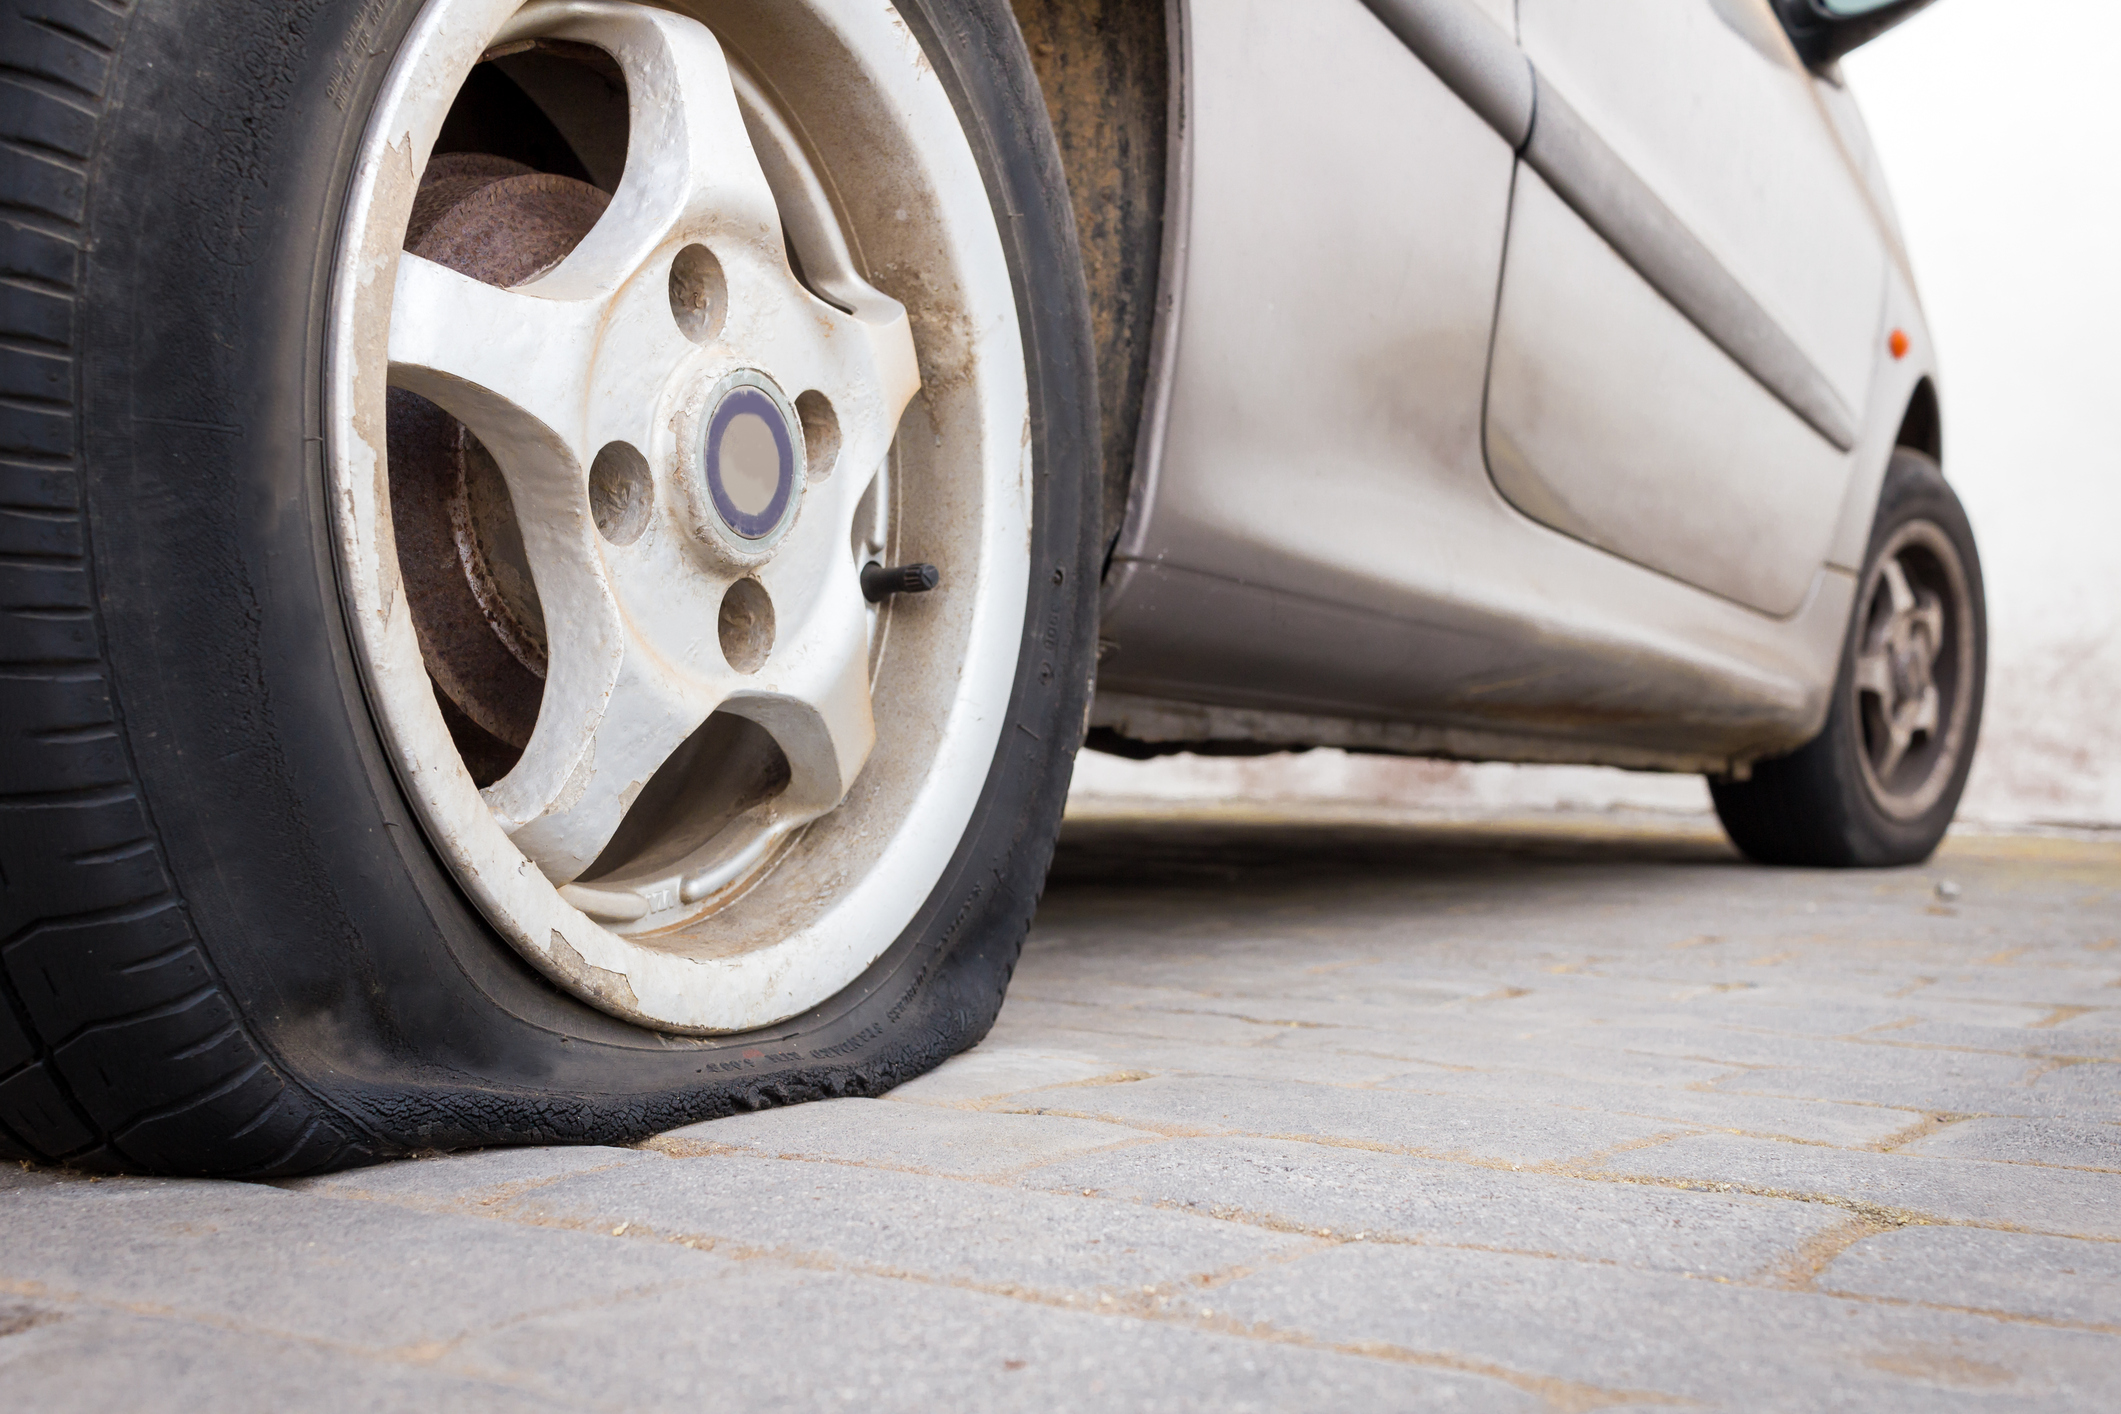 Why Is It So Important to Check Your Tire Pressure Regularly?